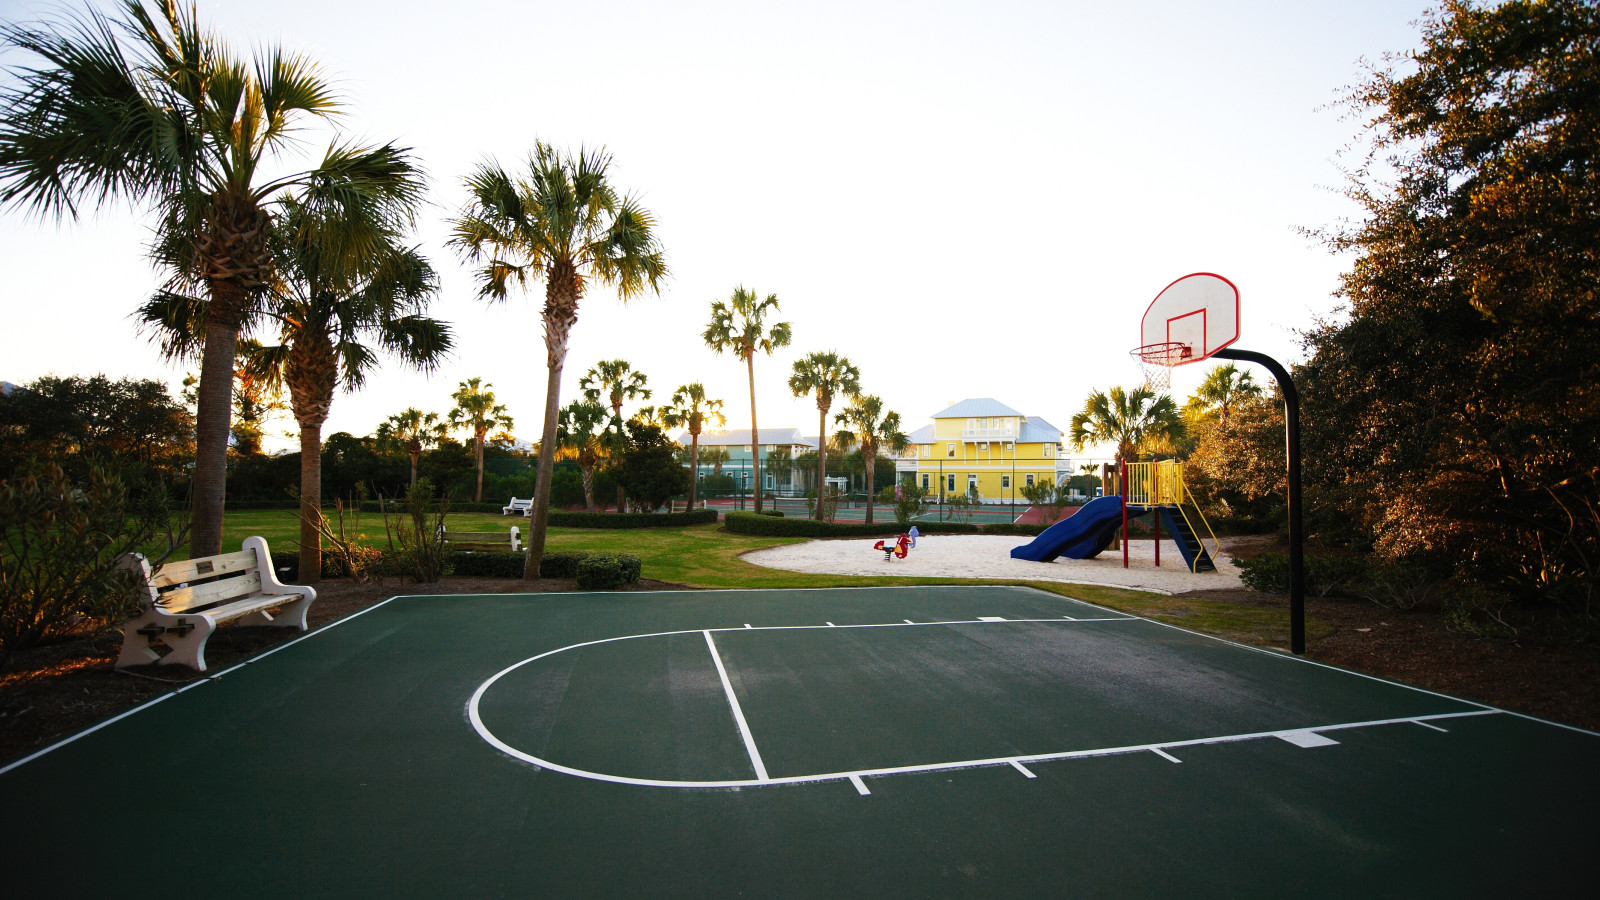 Basketball Court The Official Carillon Beach Website